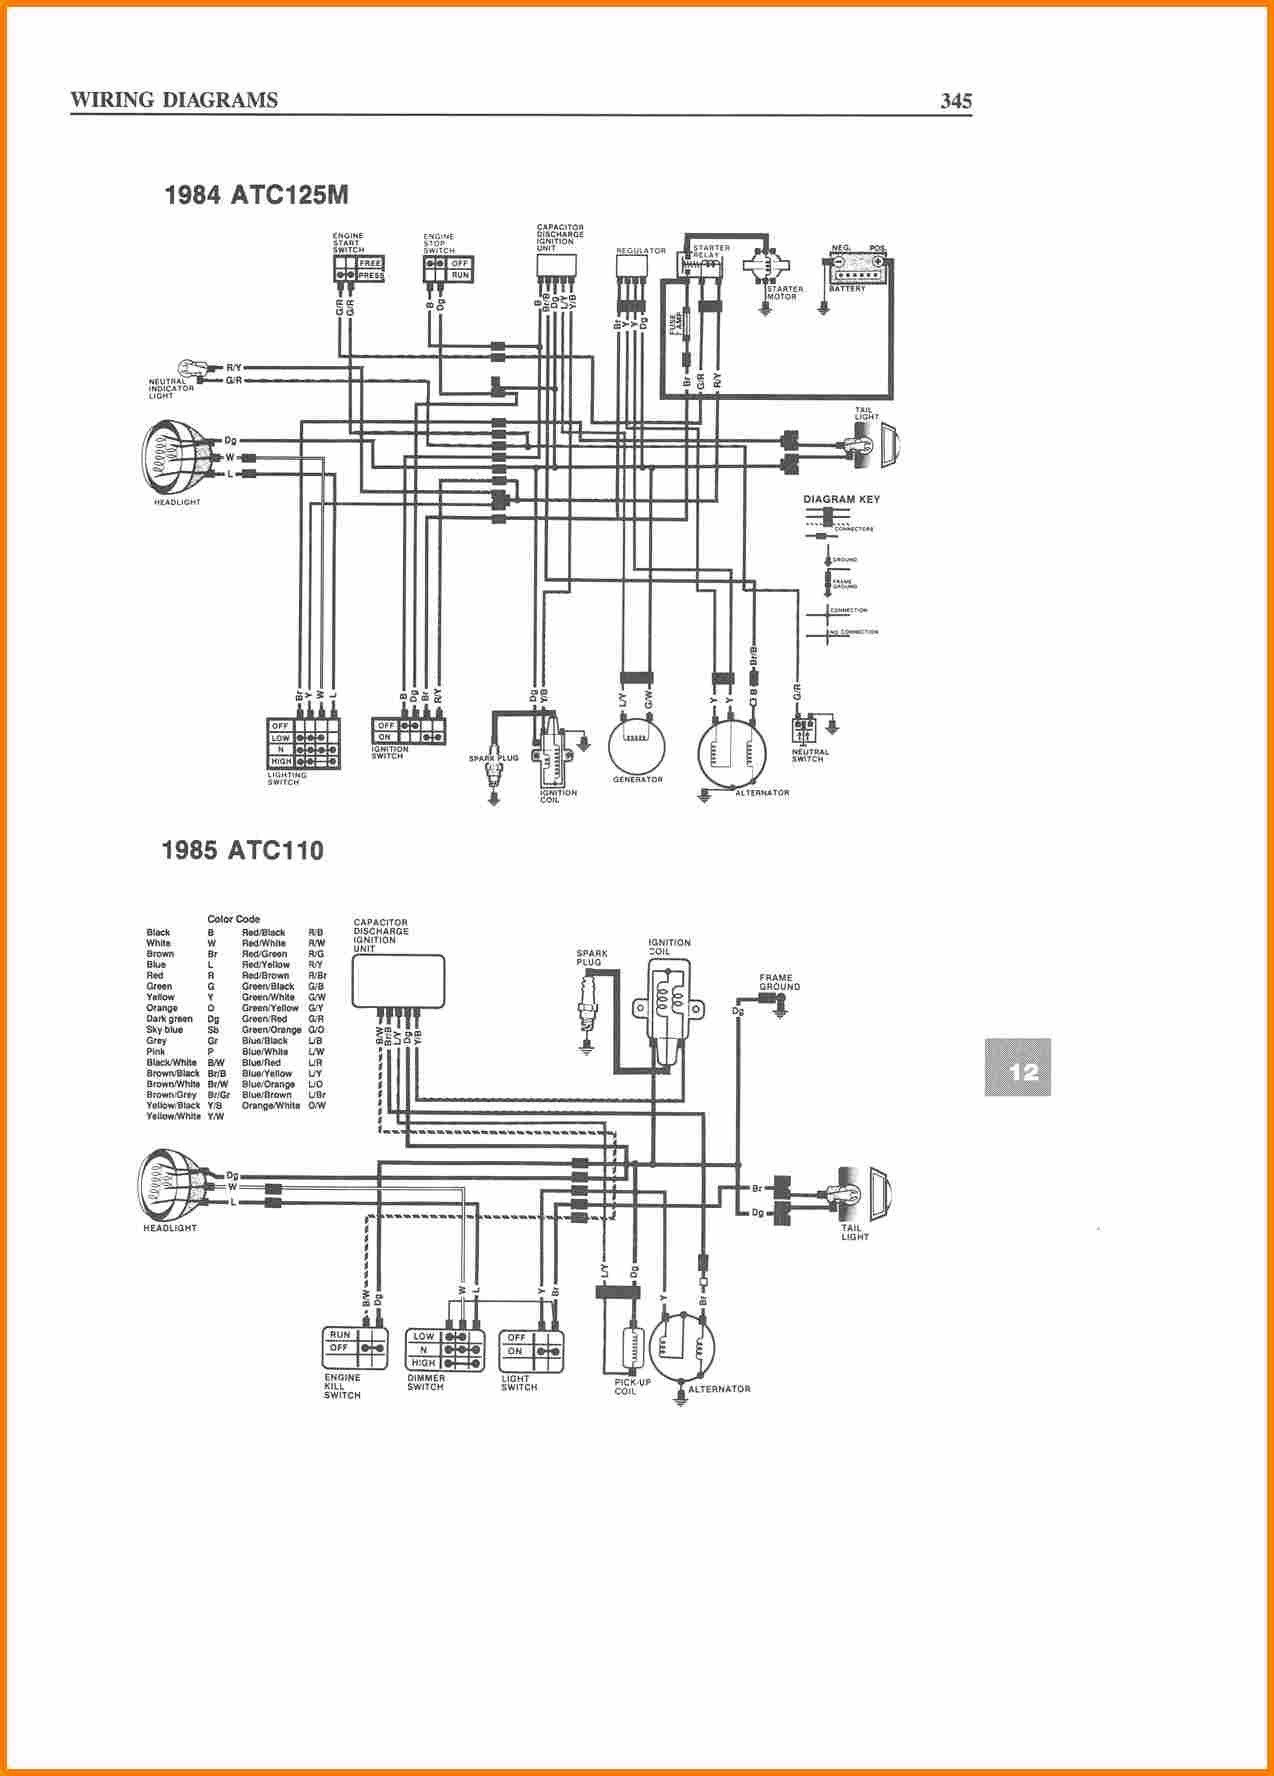 lifan 49cc wiring diagram wiring diagram library u2022 rh wiringhero today Wiring Diagram for Sunl Quad Scooter Sunl Adventure Wiring-Diagram